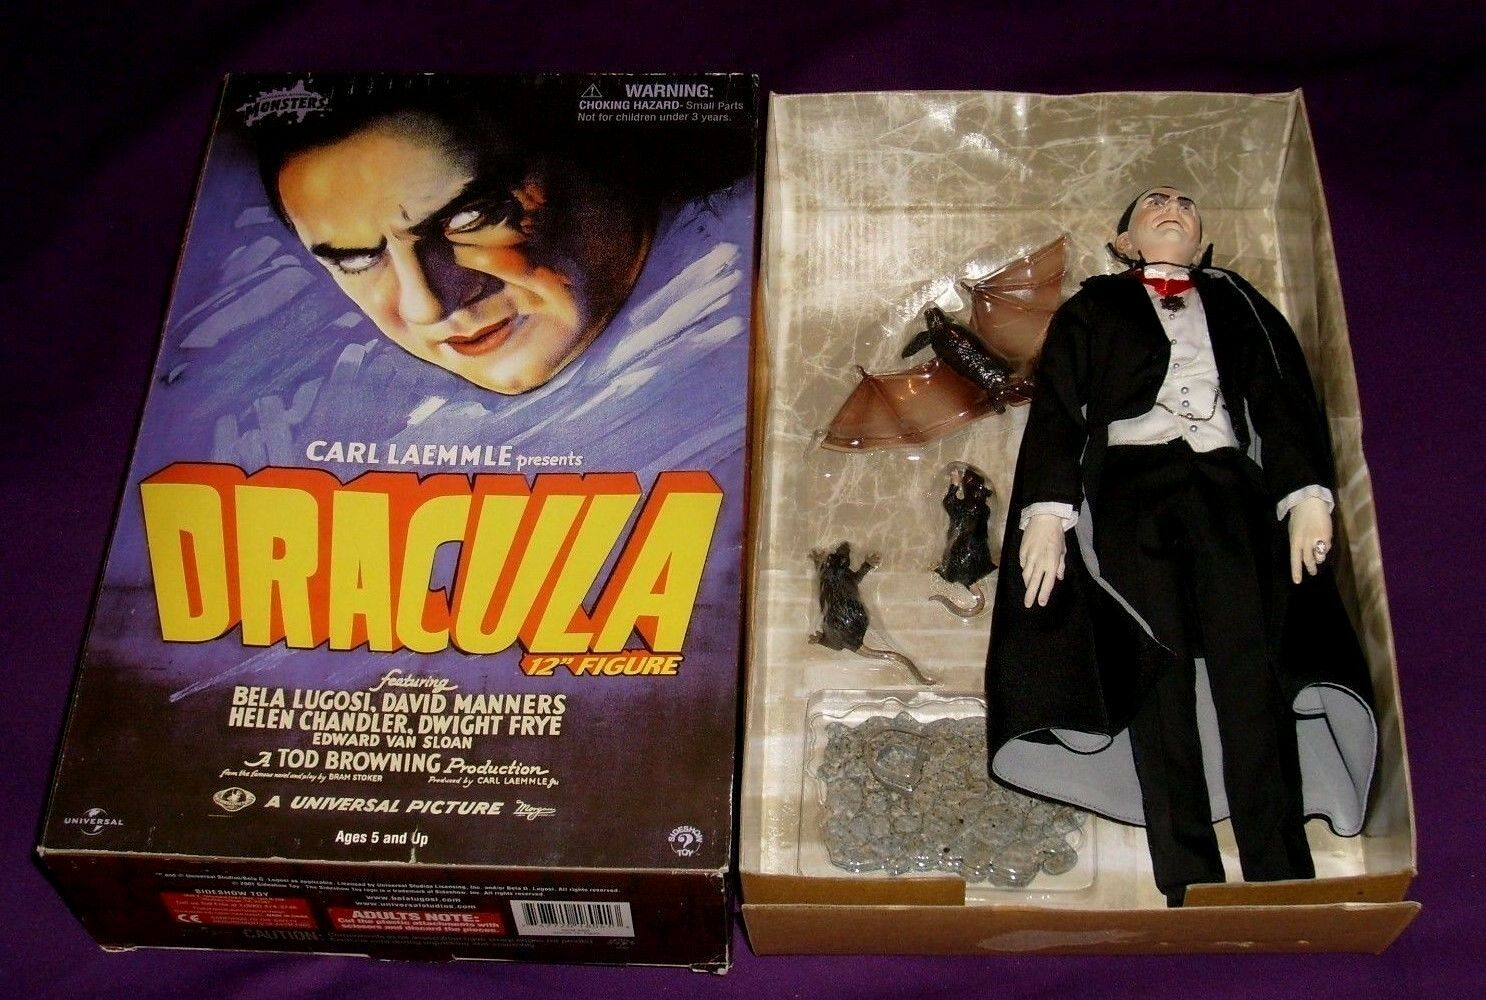 Vintage Sideshow Collectibles Collectibles Collectibles 12 inch Dracula Figure, Bela Lugosi, Opened Box 846ee3